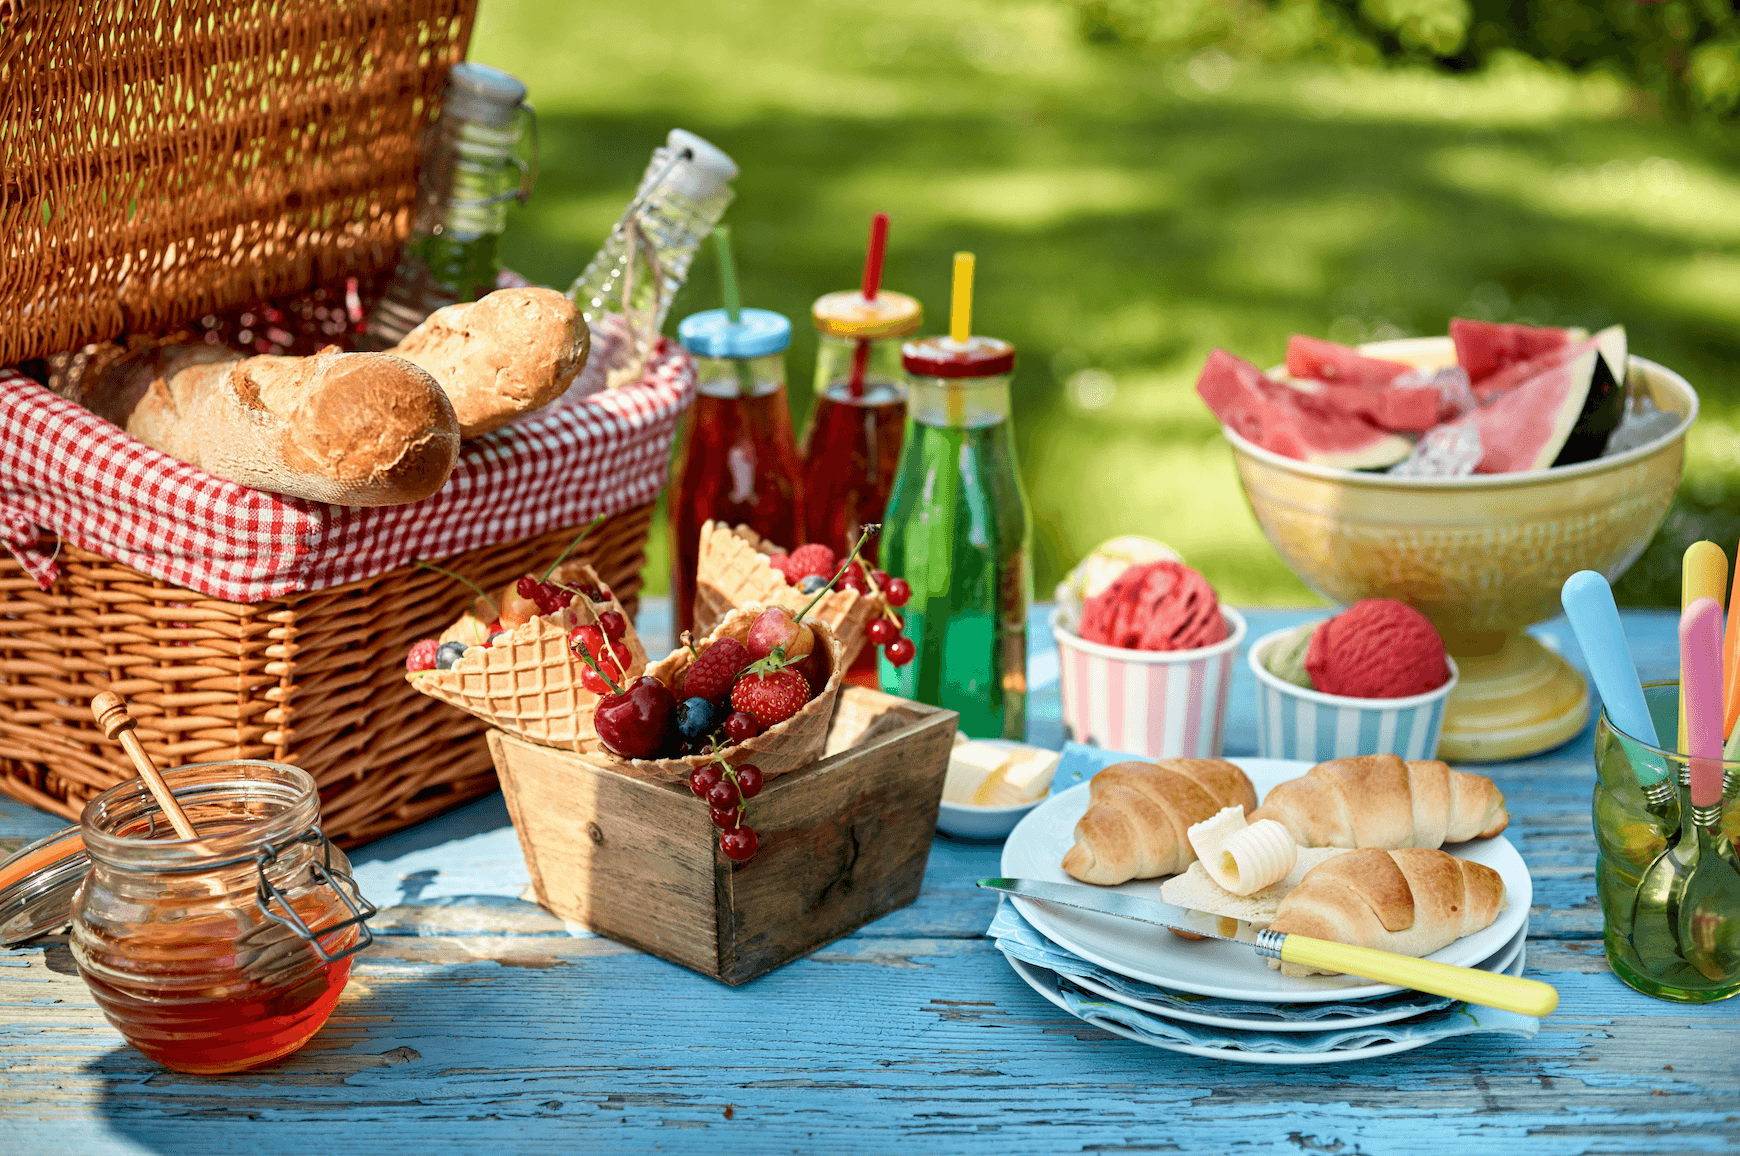 Starting Summer Right with the Perfect Picnic - blog post image